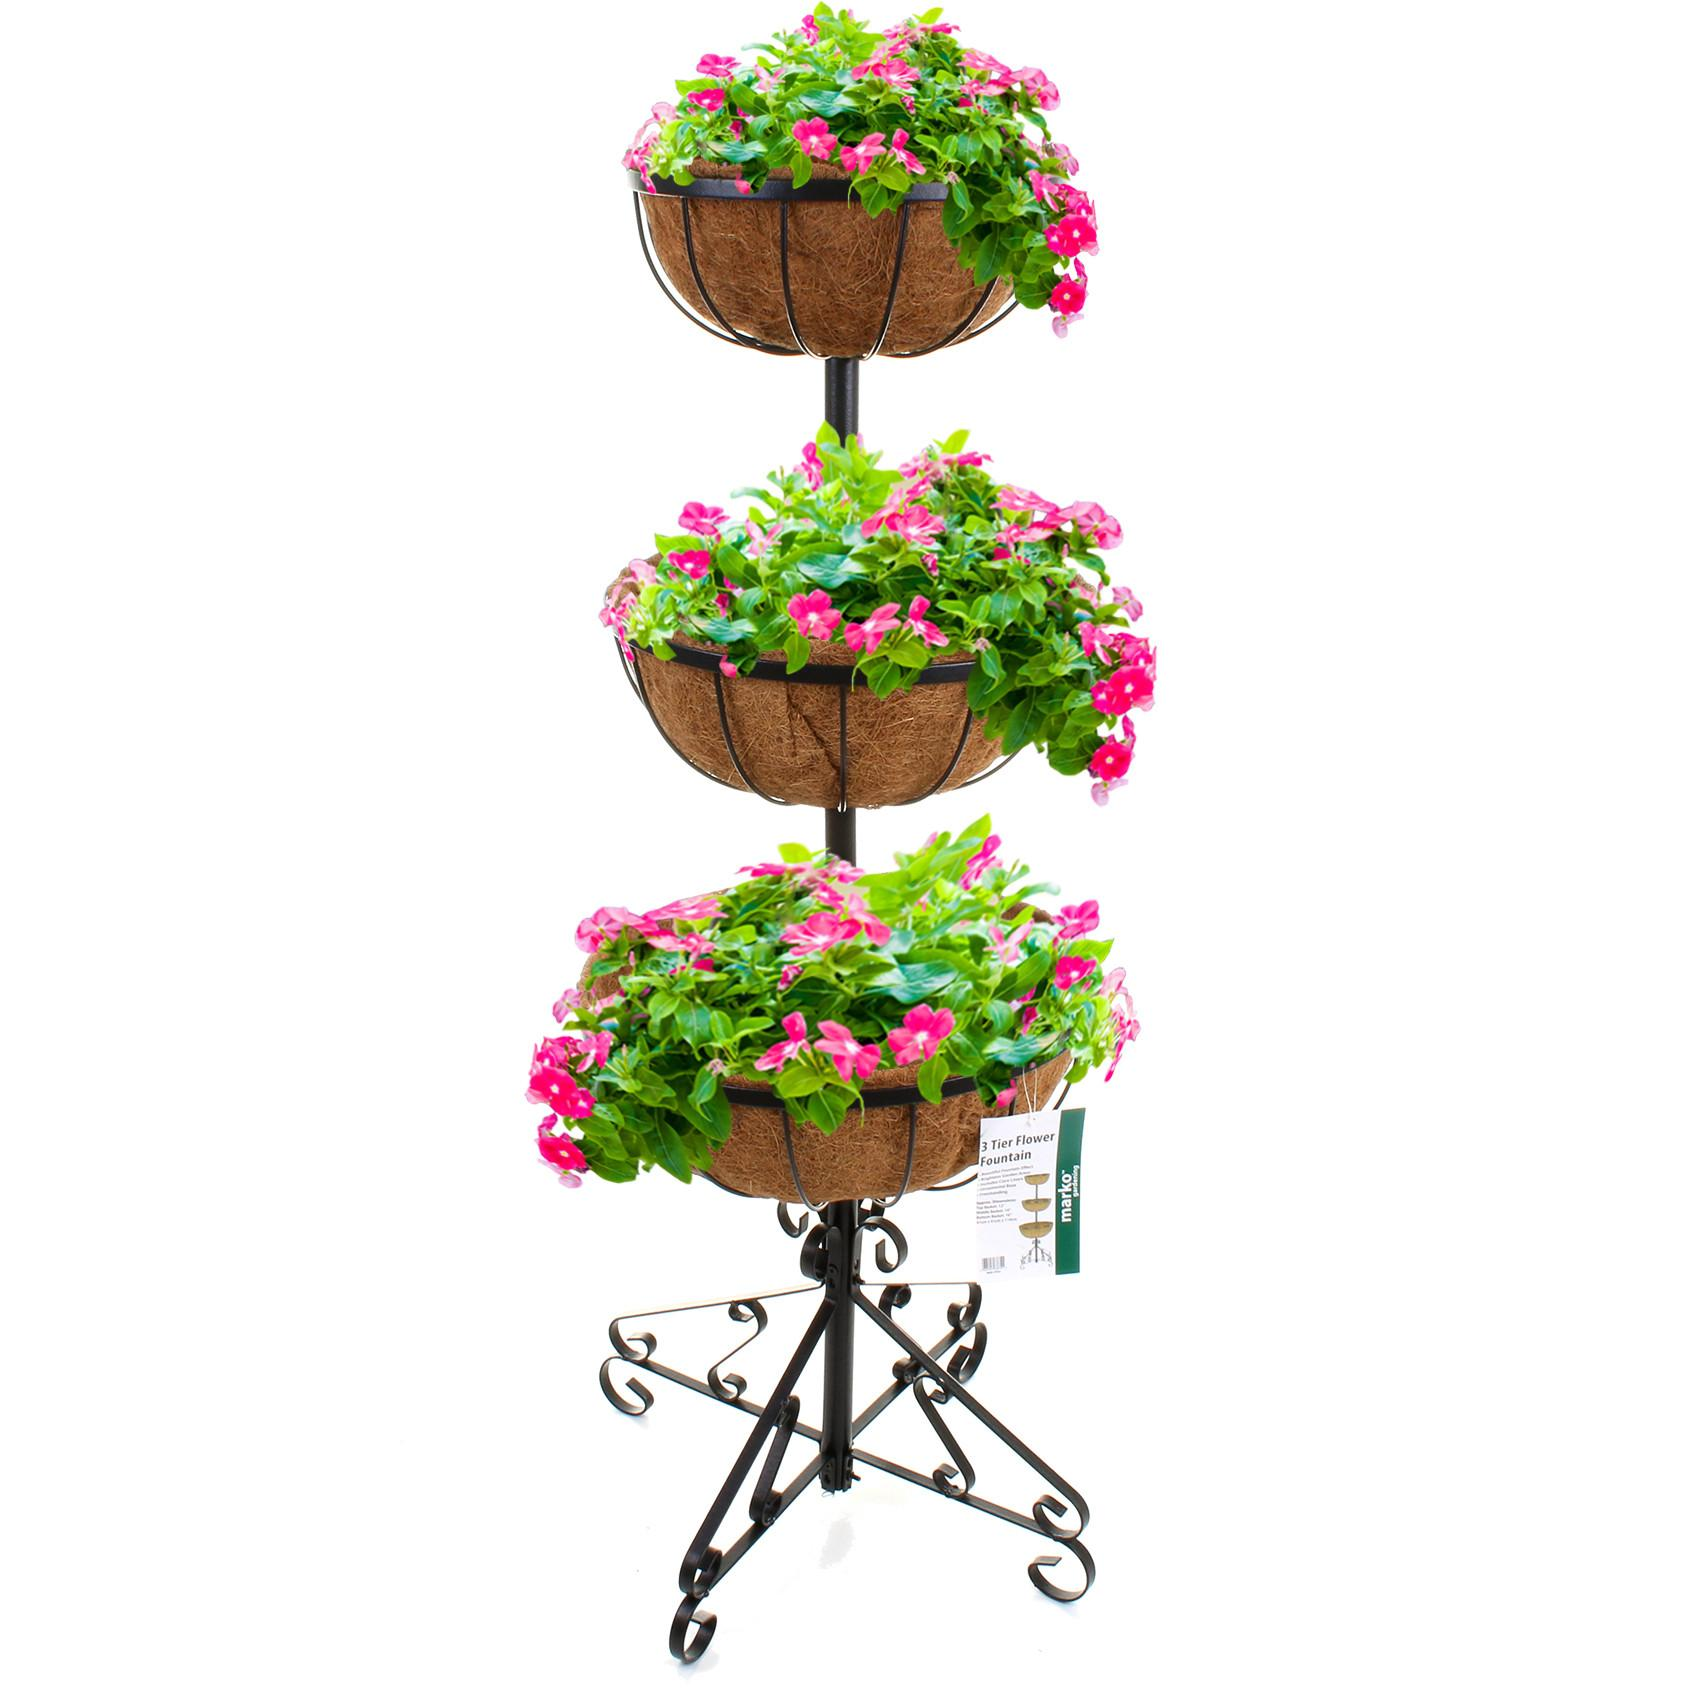 Outdoor Garden Tier Cradle Planters Plants Flowers Coco